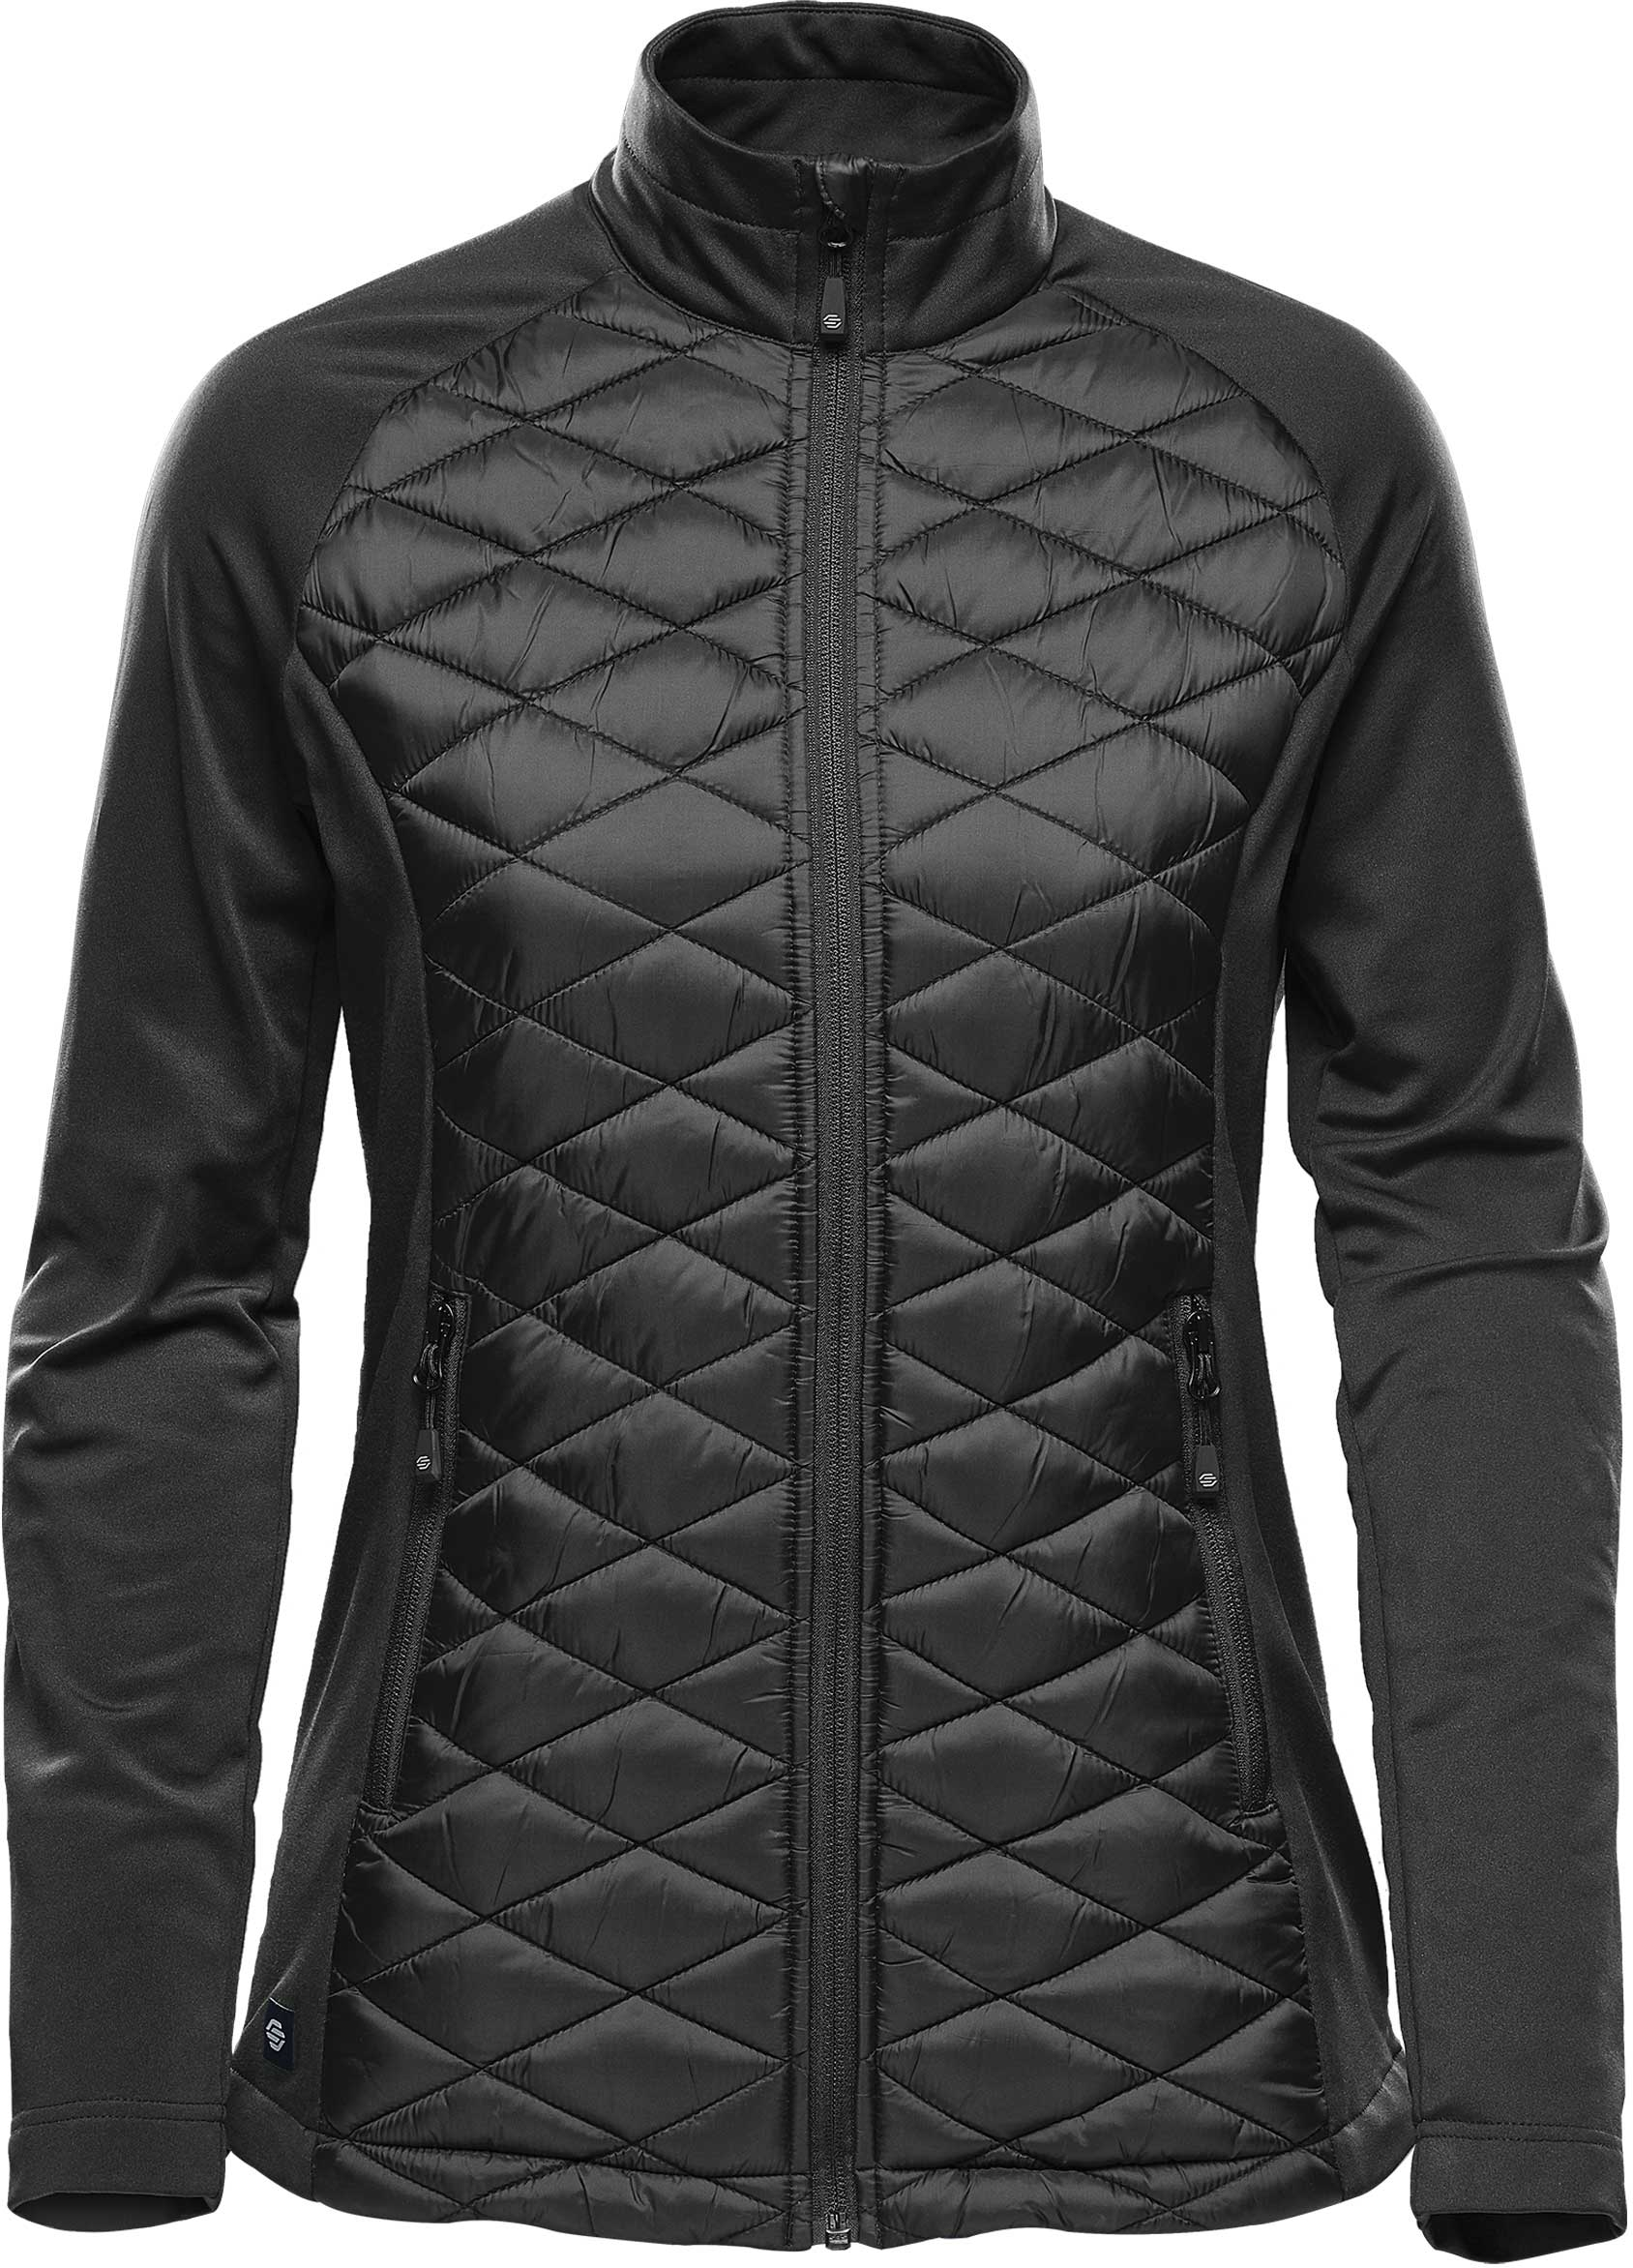 Picture of Stormtech Women's Boulder Thermal Shell Jacket